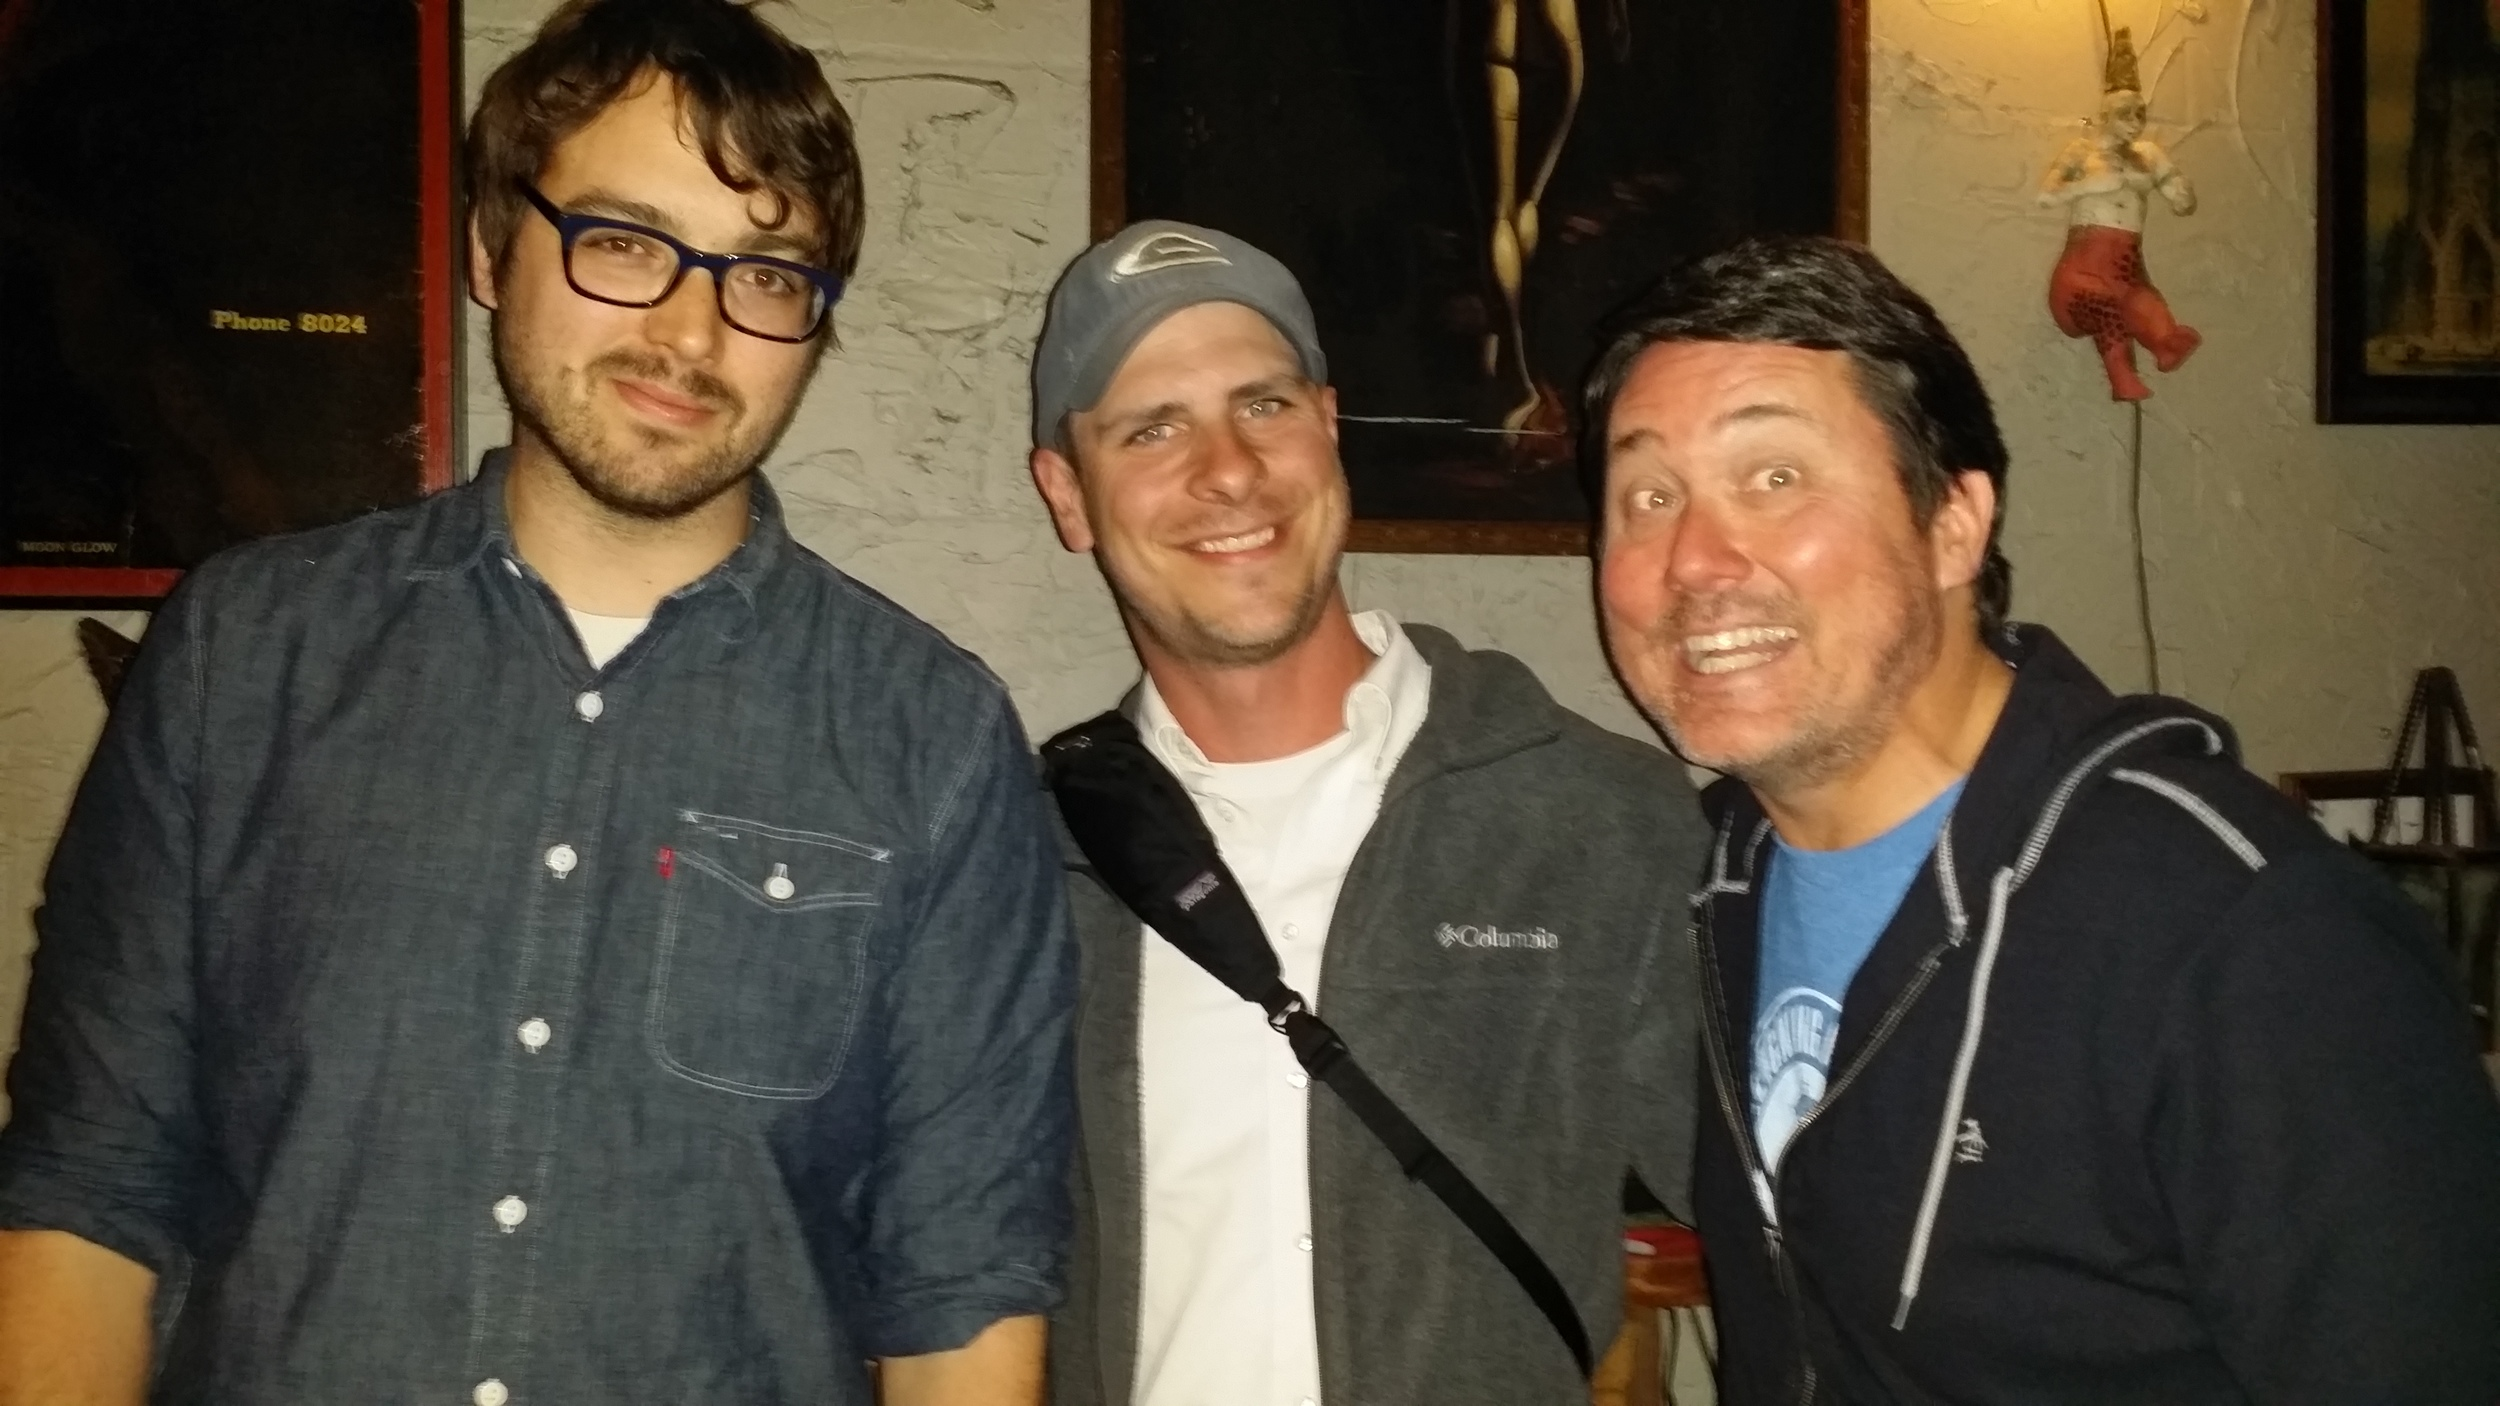 Recently, Rett had the pleasure of meeting a truly talented comedian named Jonah Ray. Then Doug Benson suddenly jumped into the picture.